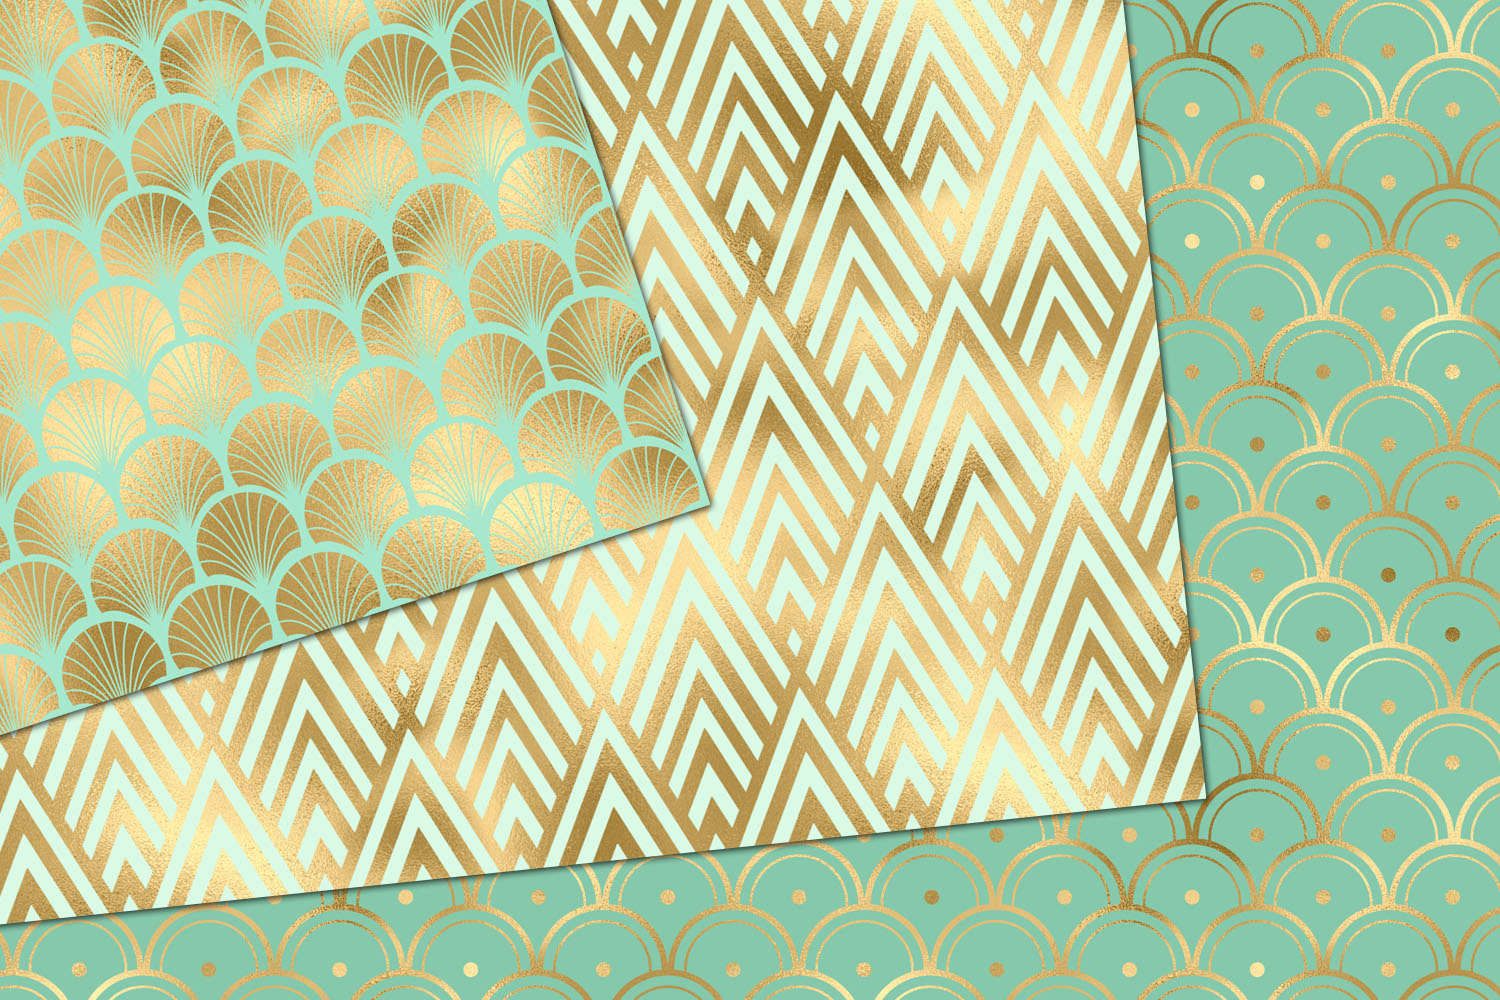 Mint and Gold Art Deco Digital Paper example image 2